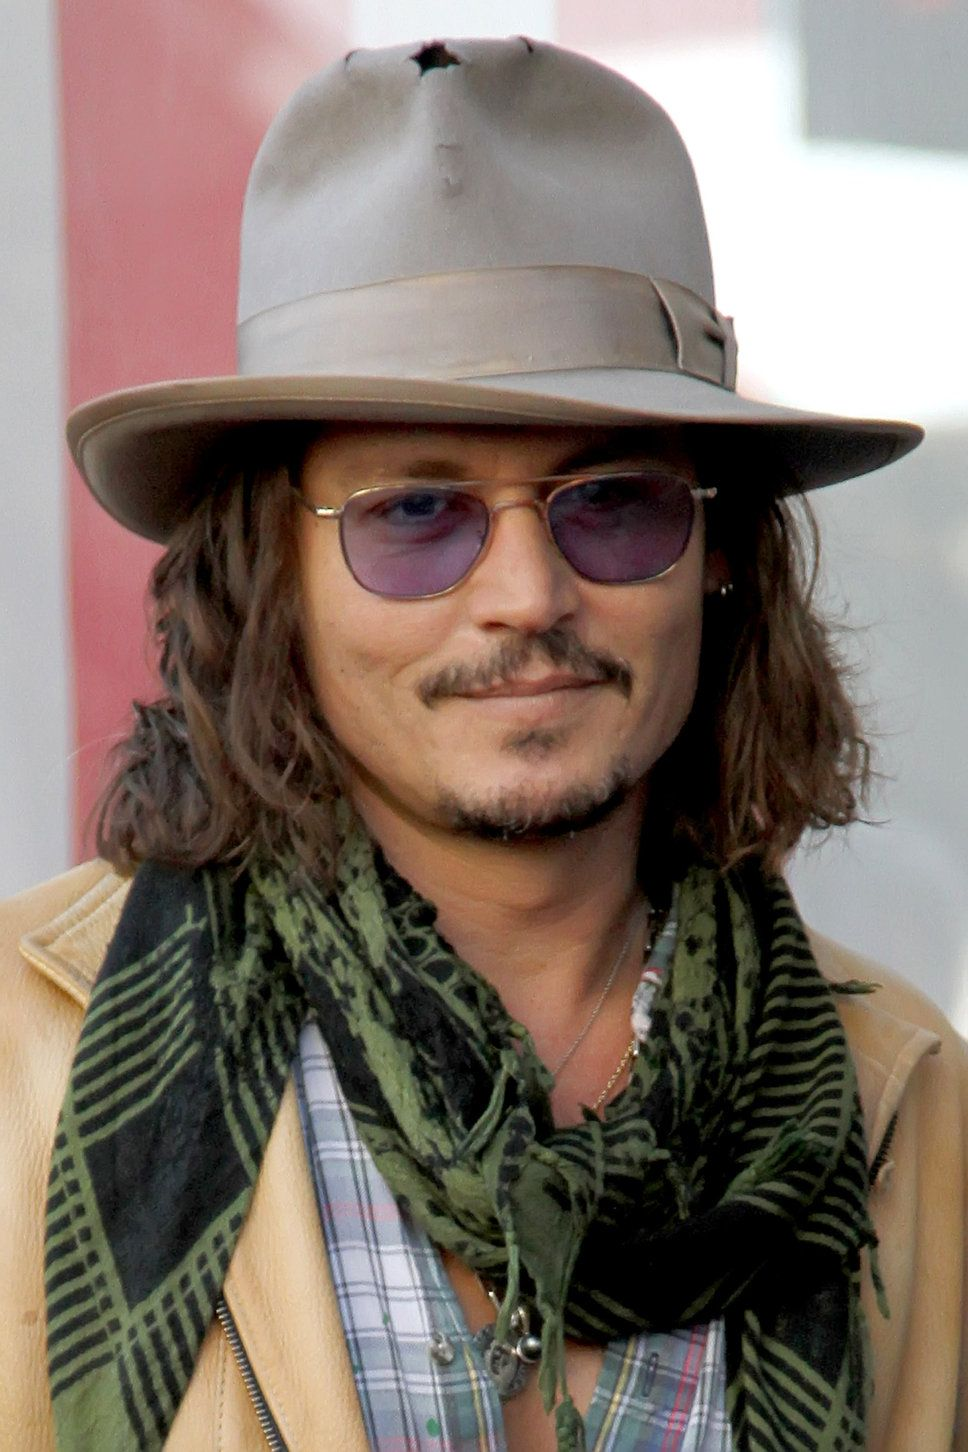 Johnny Depp Beige Jacket Checked Shirt Black And Green Scarf Sunglasses Grey Hat Long HairJohnny Is A Typical Bohemian Type Of Guy